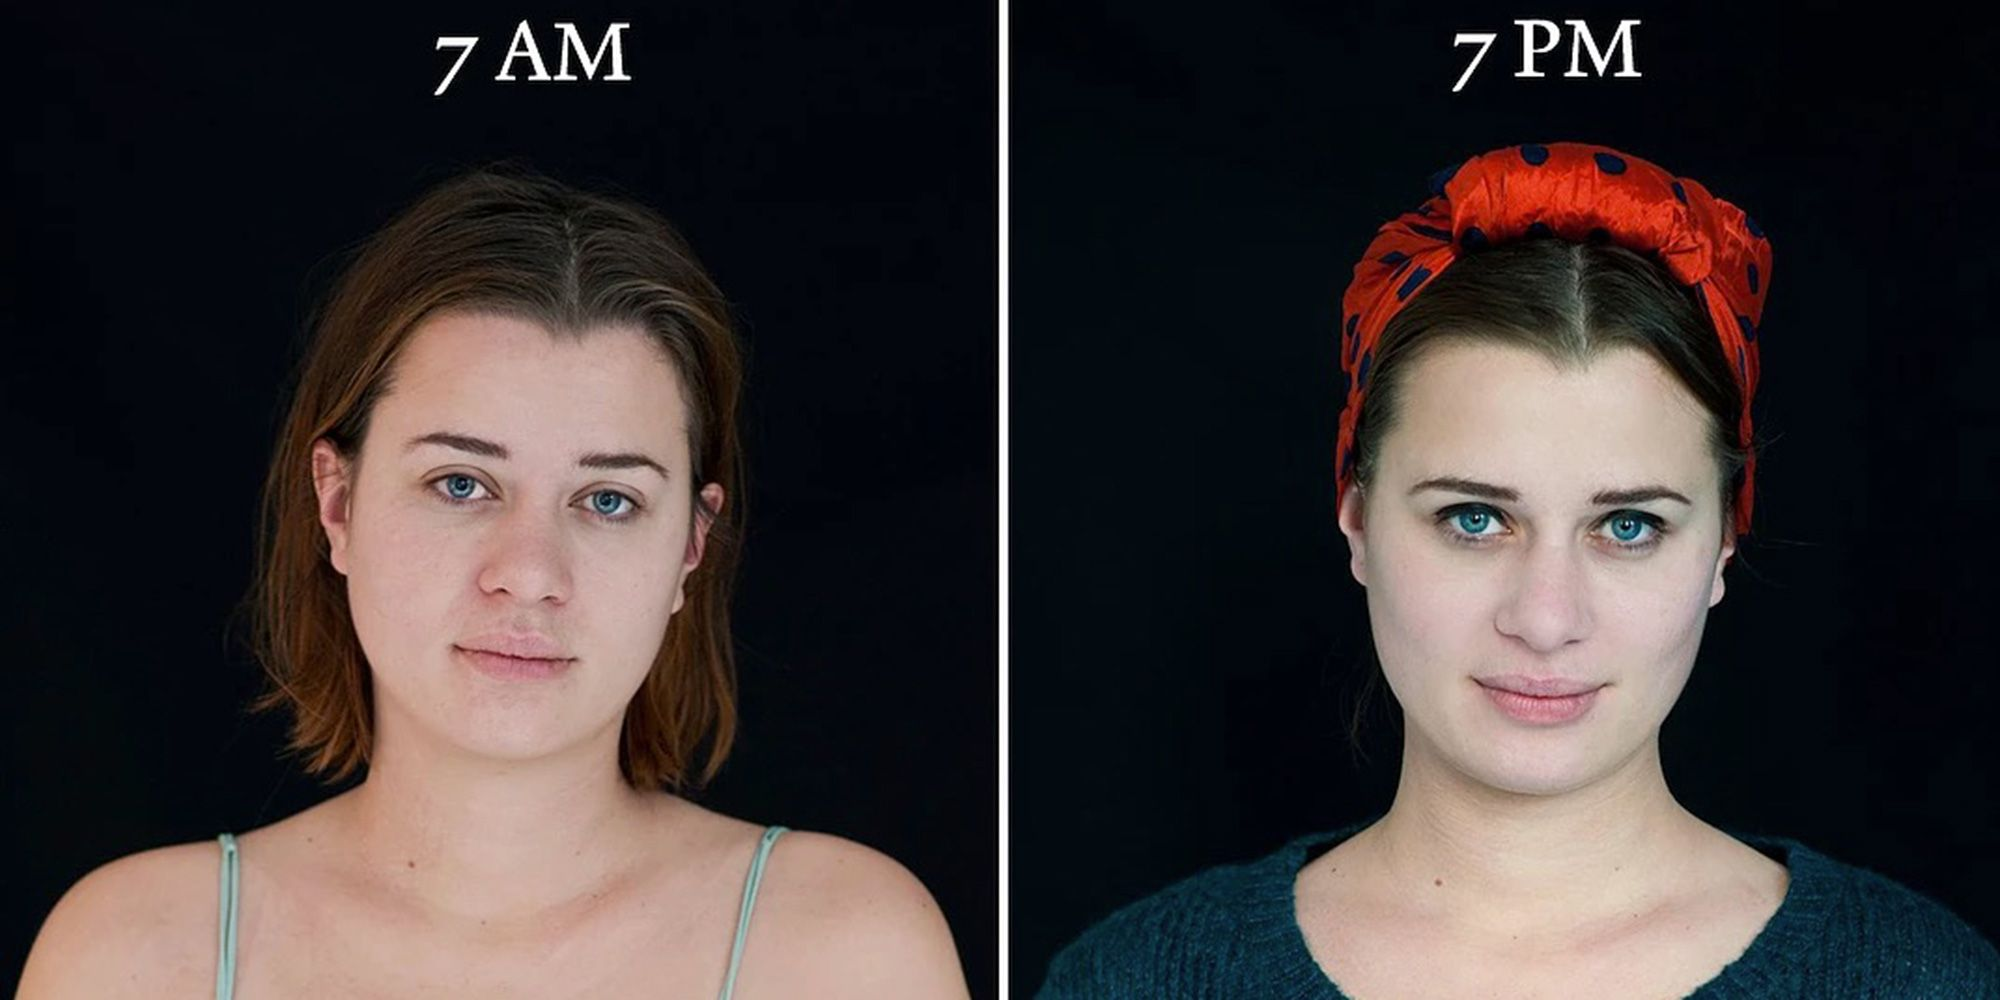 This is how a person's face changes throughout the day